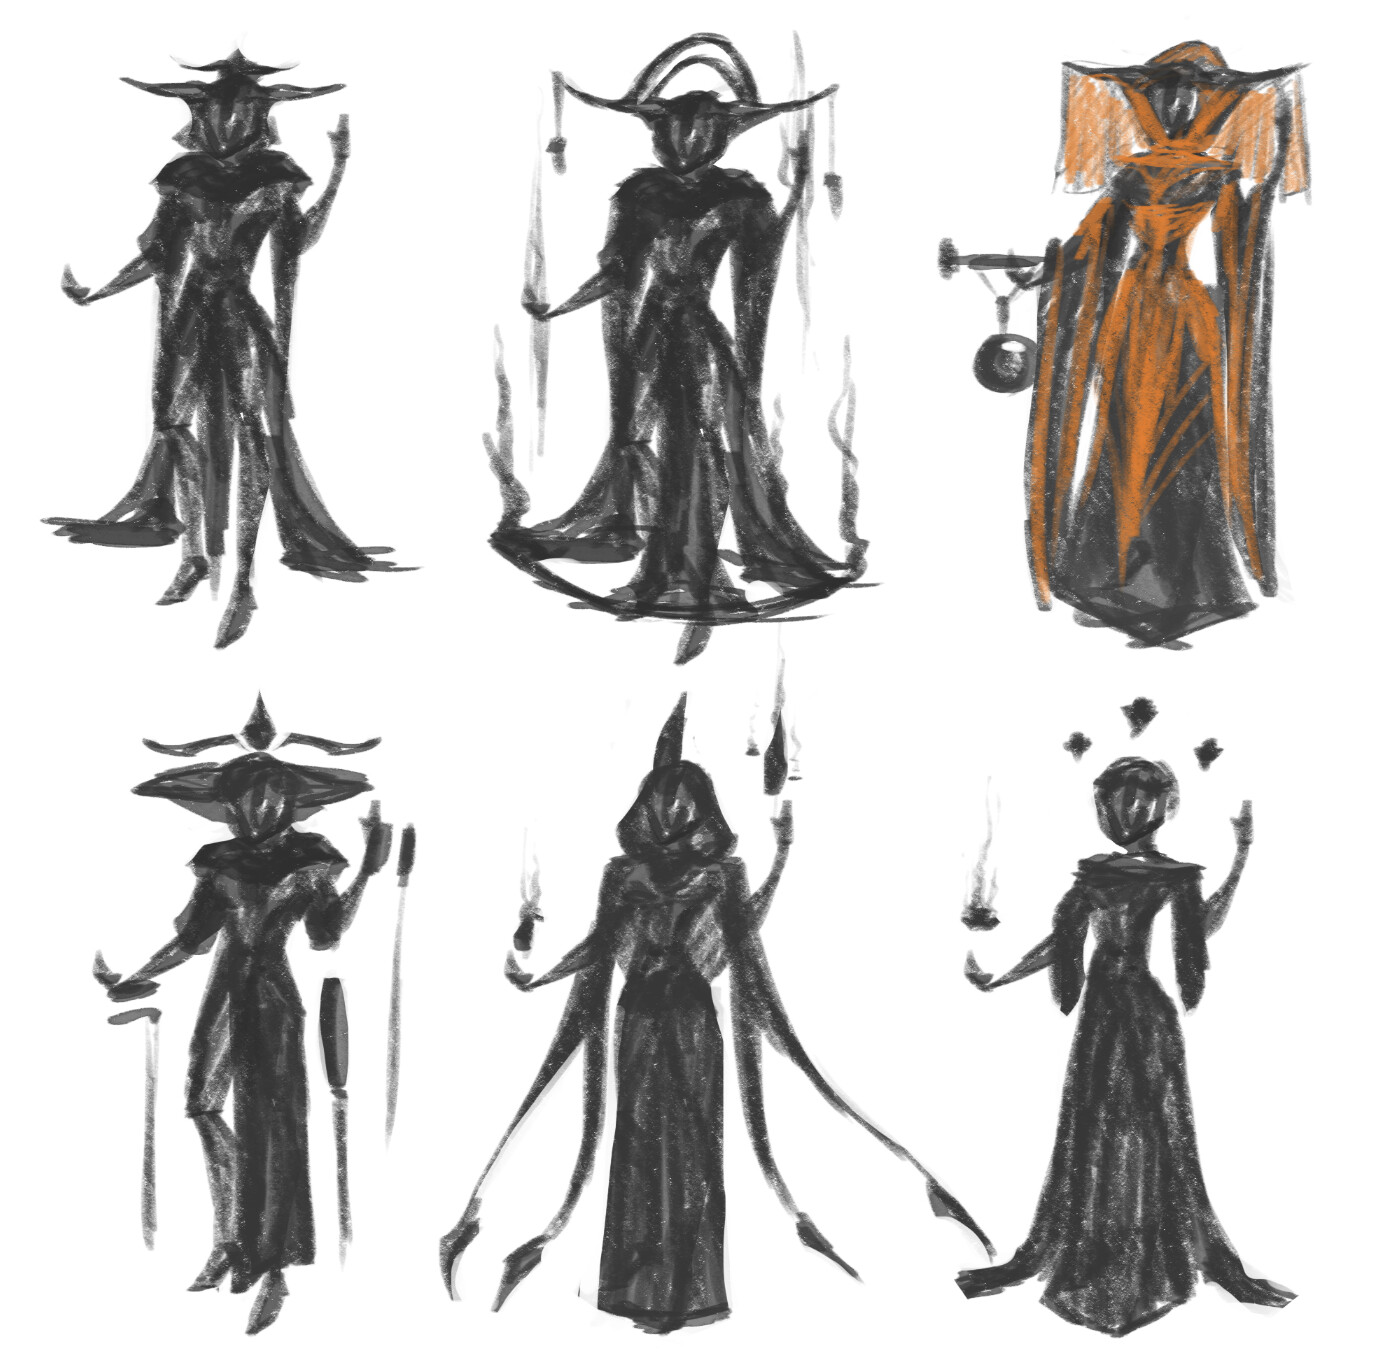 Invoker Araenia [3/3] Silhouette exploration. Wanted to go with something that looked very wise and very extra (lots of fabric and garments!)